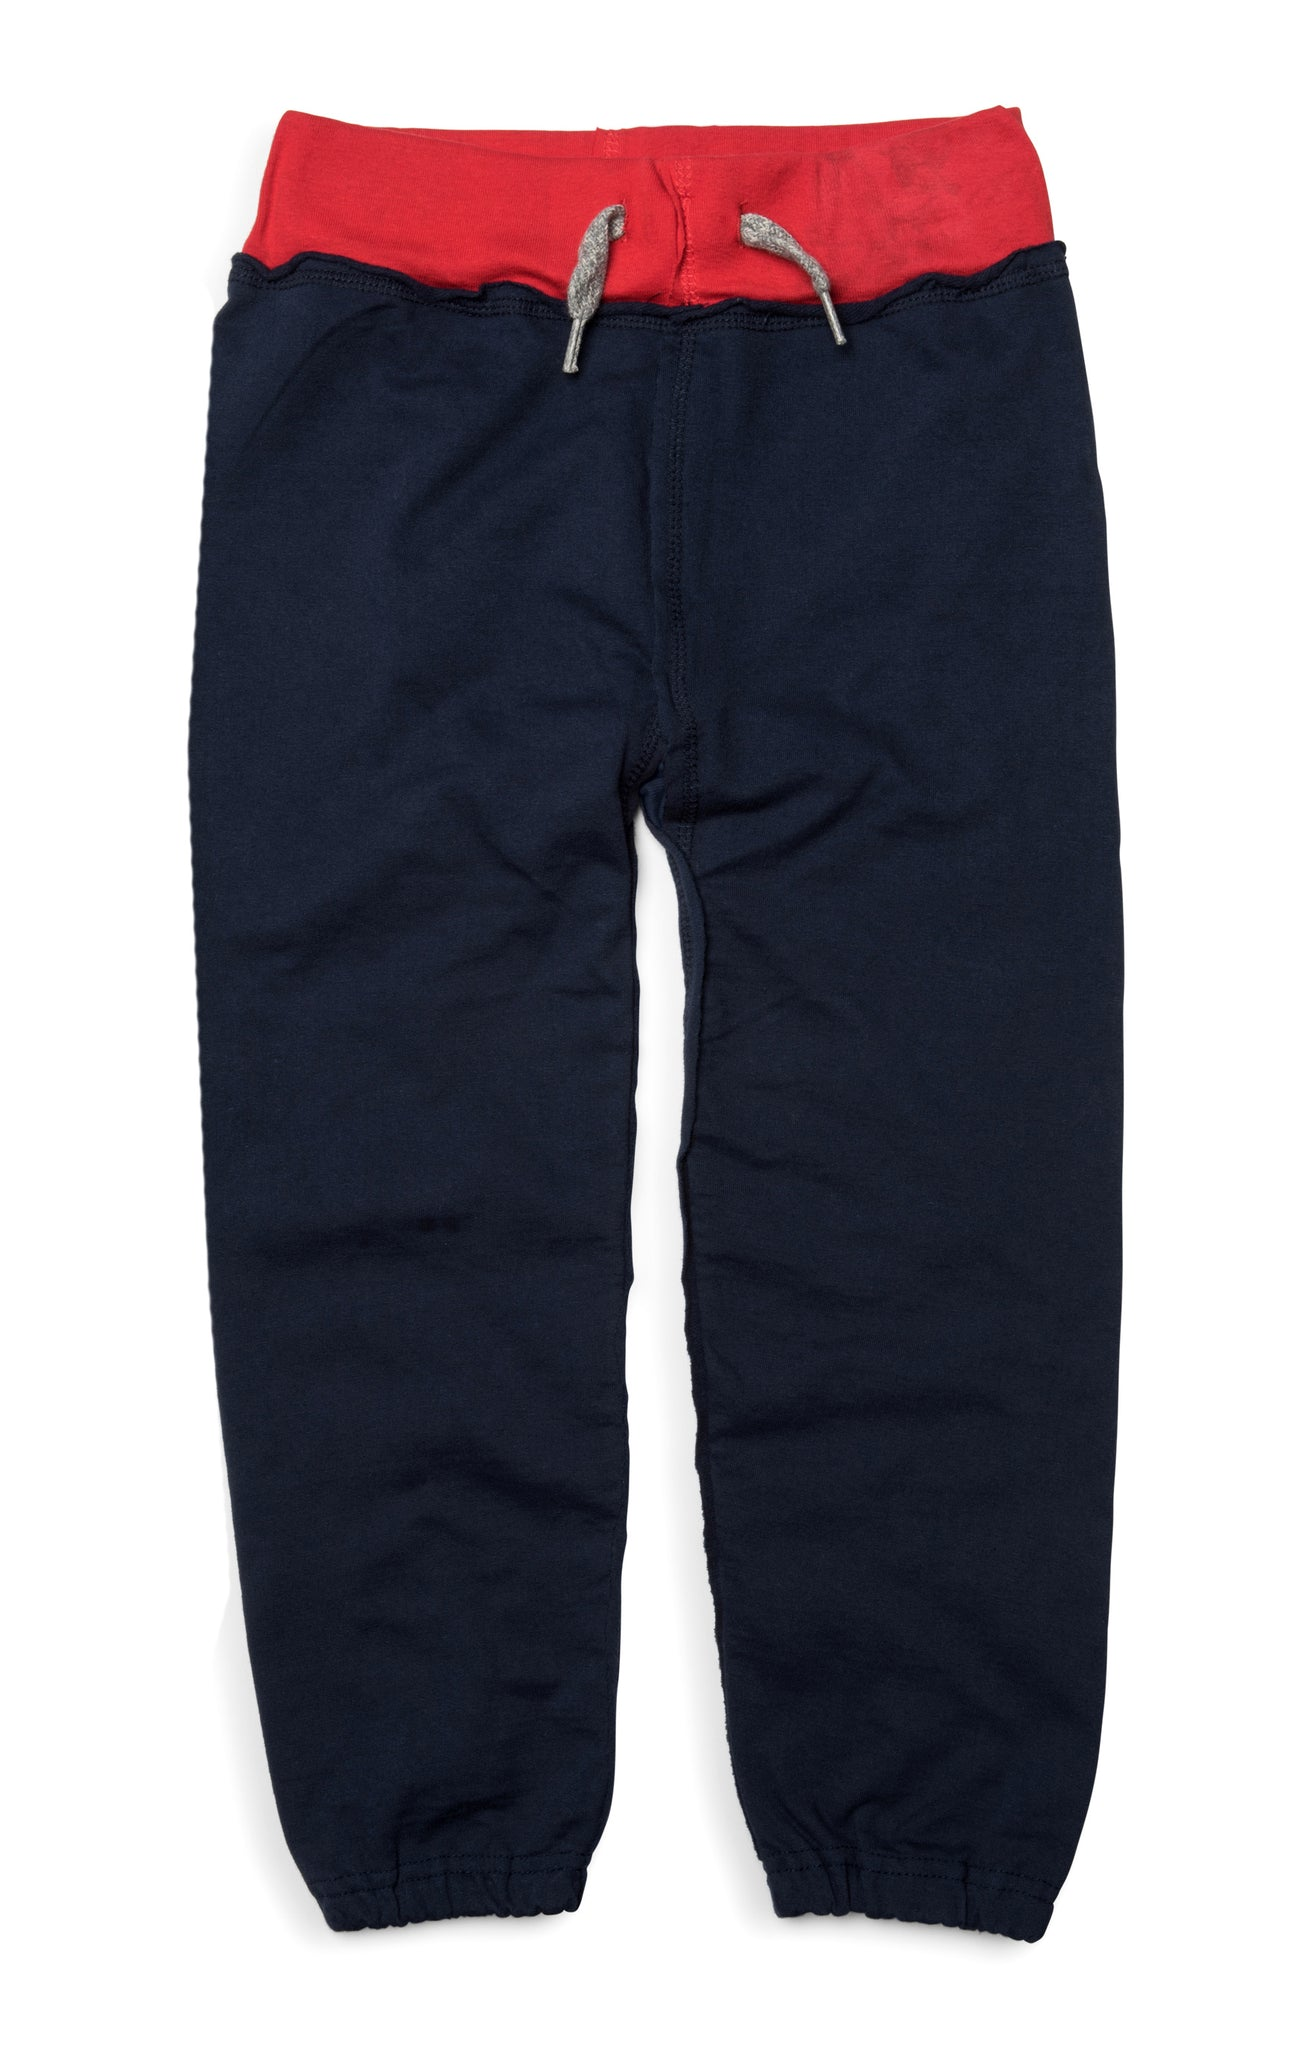 APPAMAN Boys Peacoat Gym Sweatpants